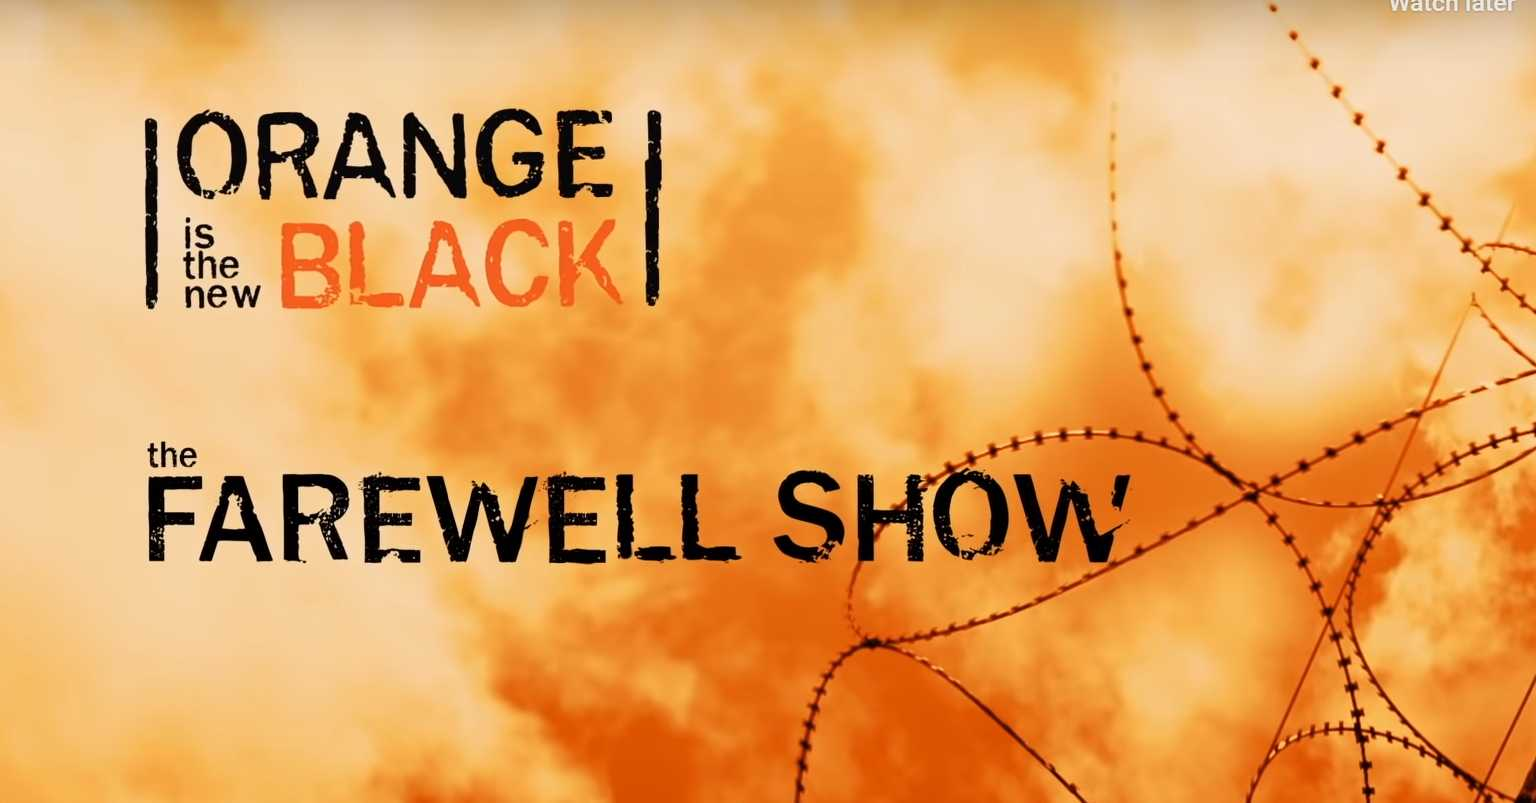 Orange is the New Black speciale farewell show